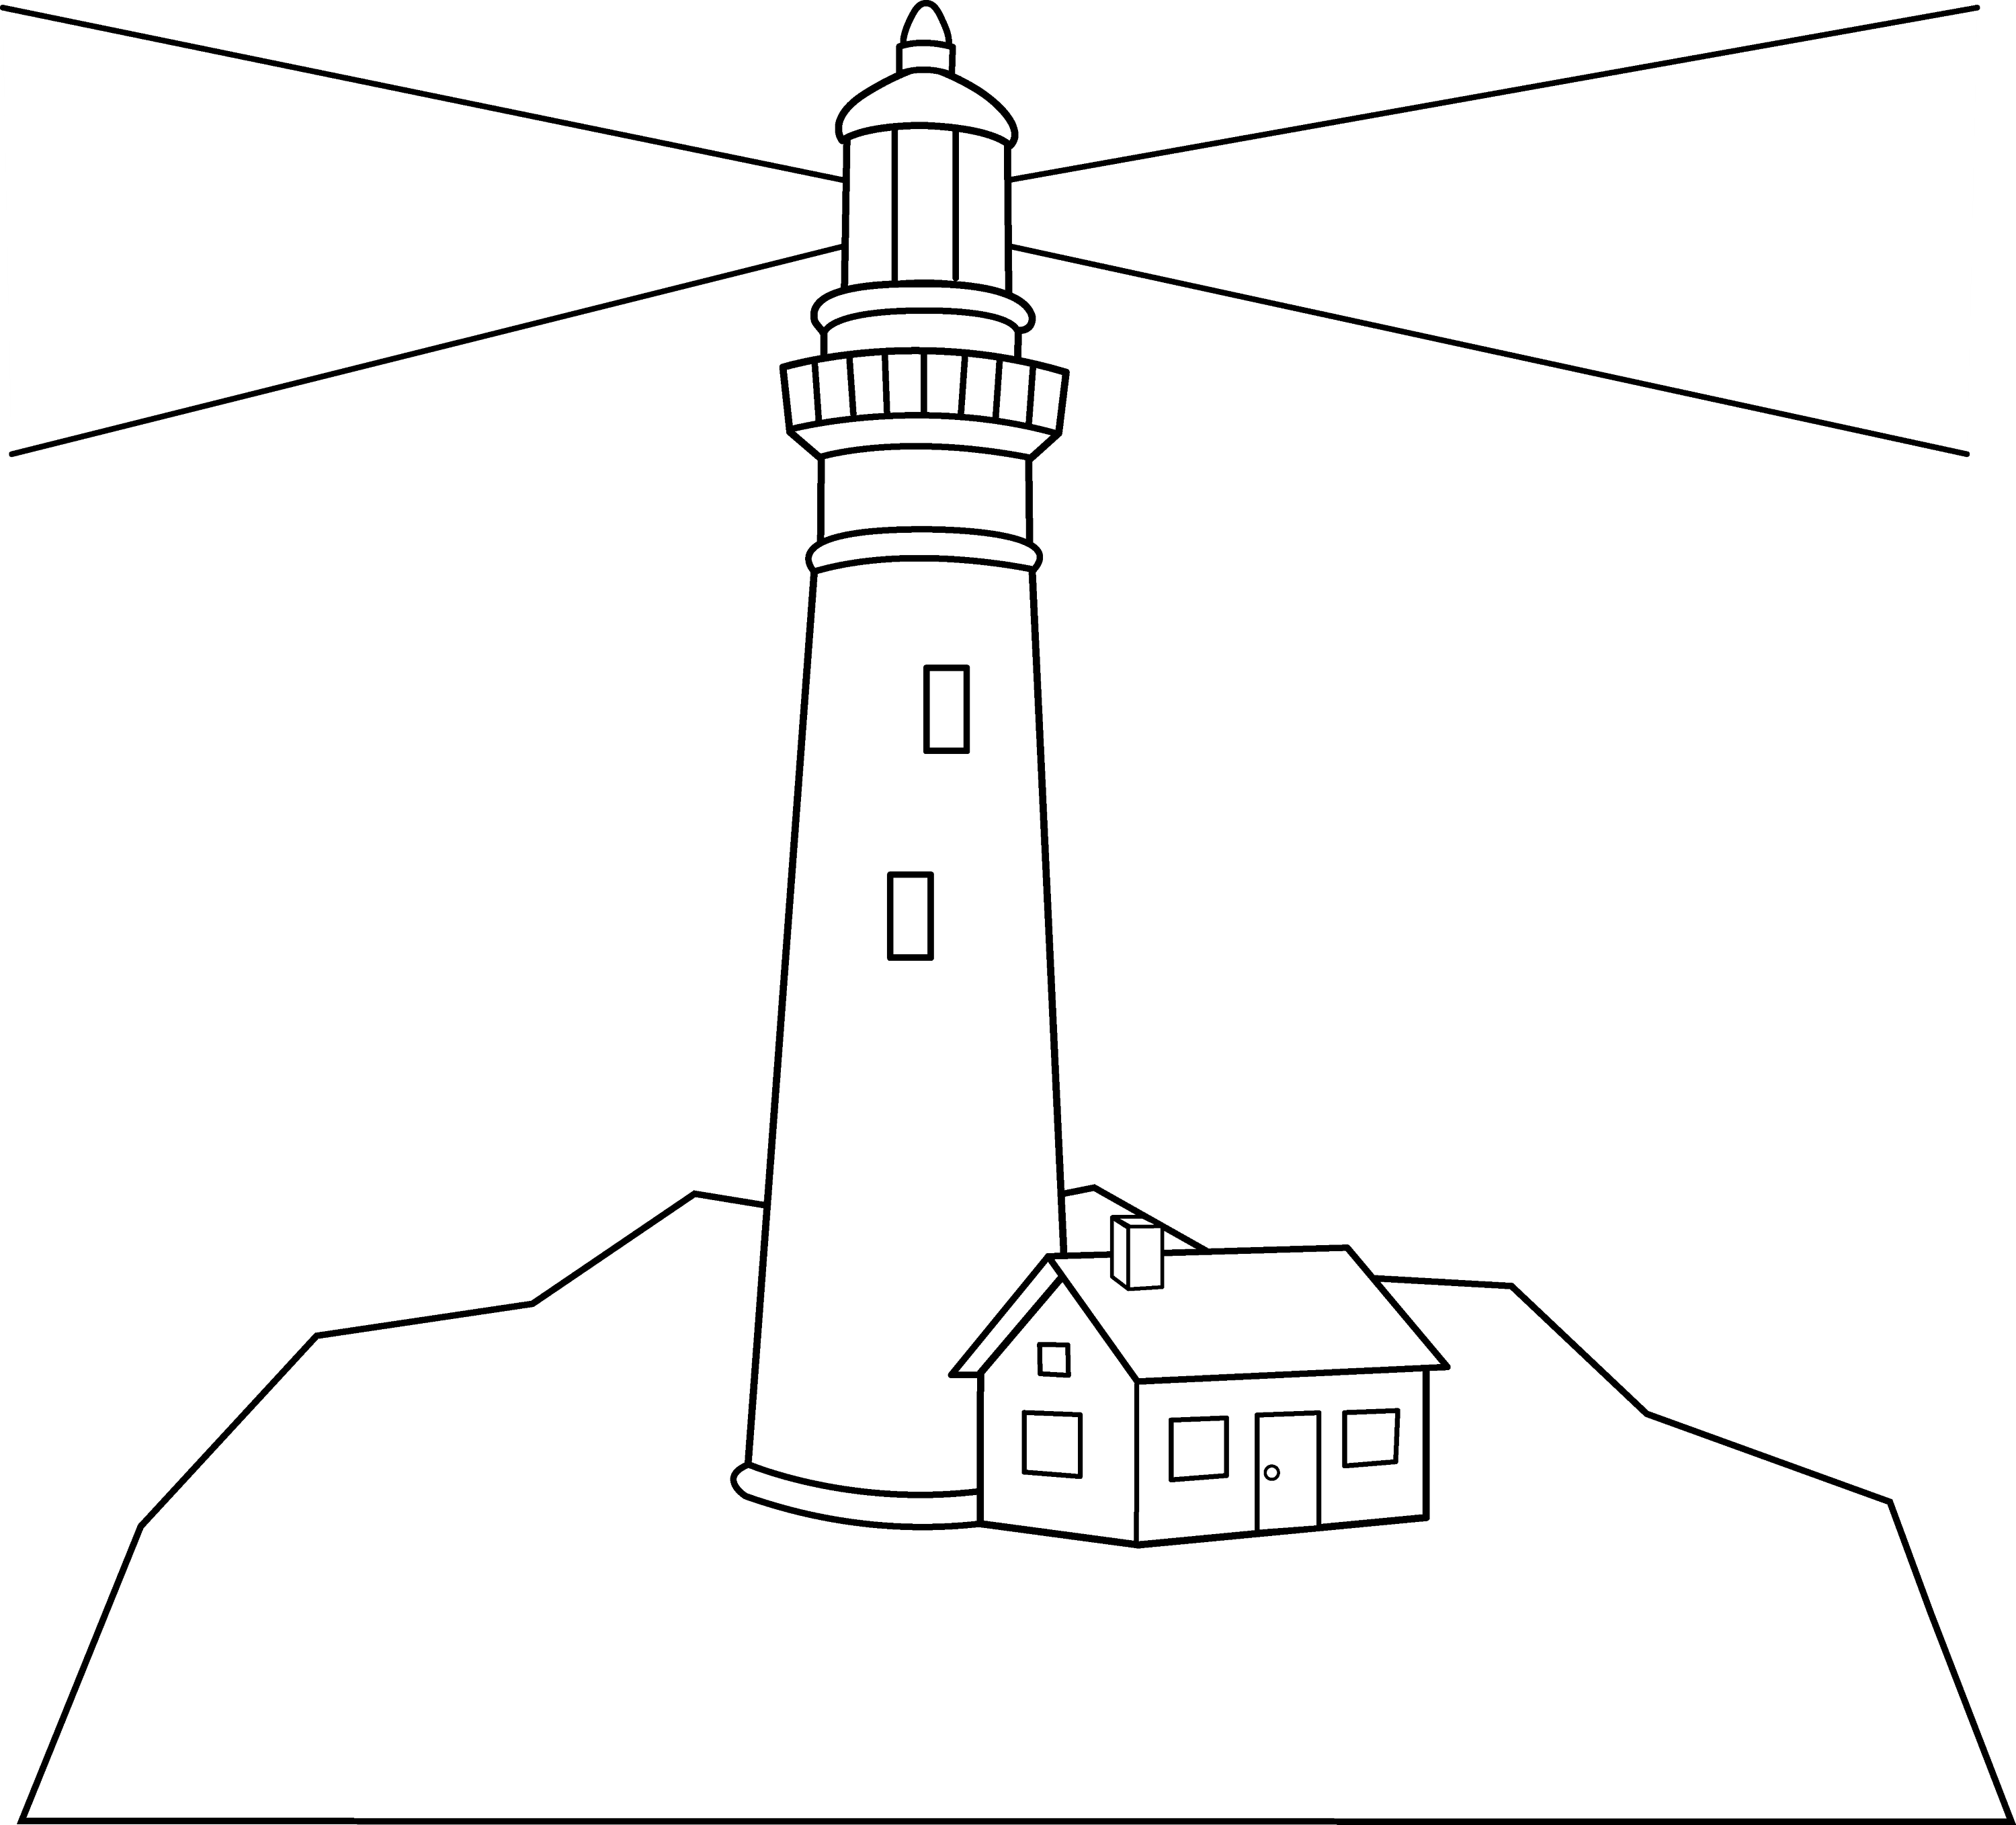 Colouring Sheet Lighthouse : Colorable lighthouse free clip art